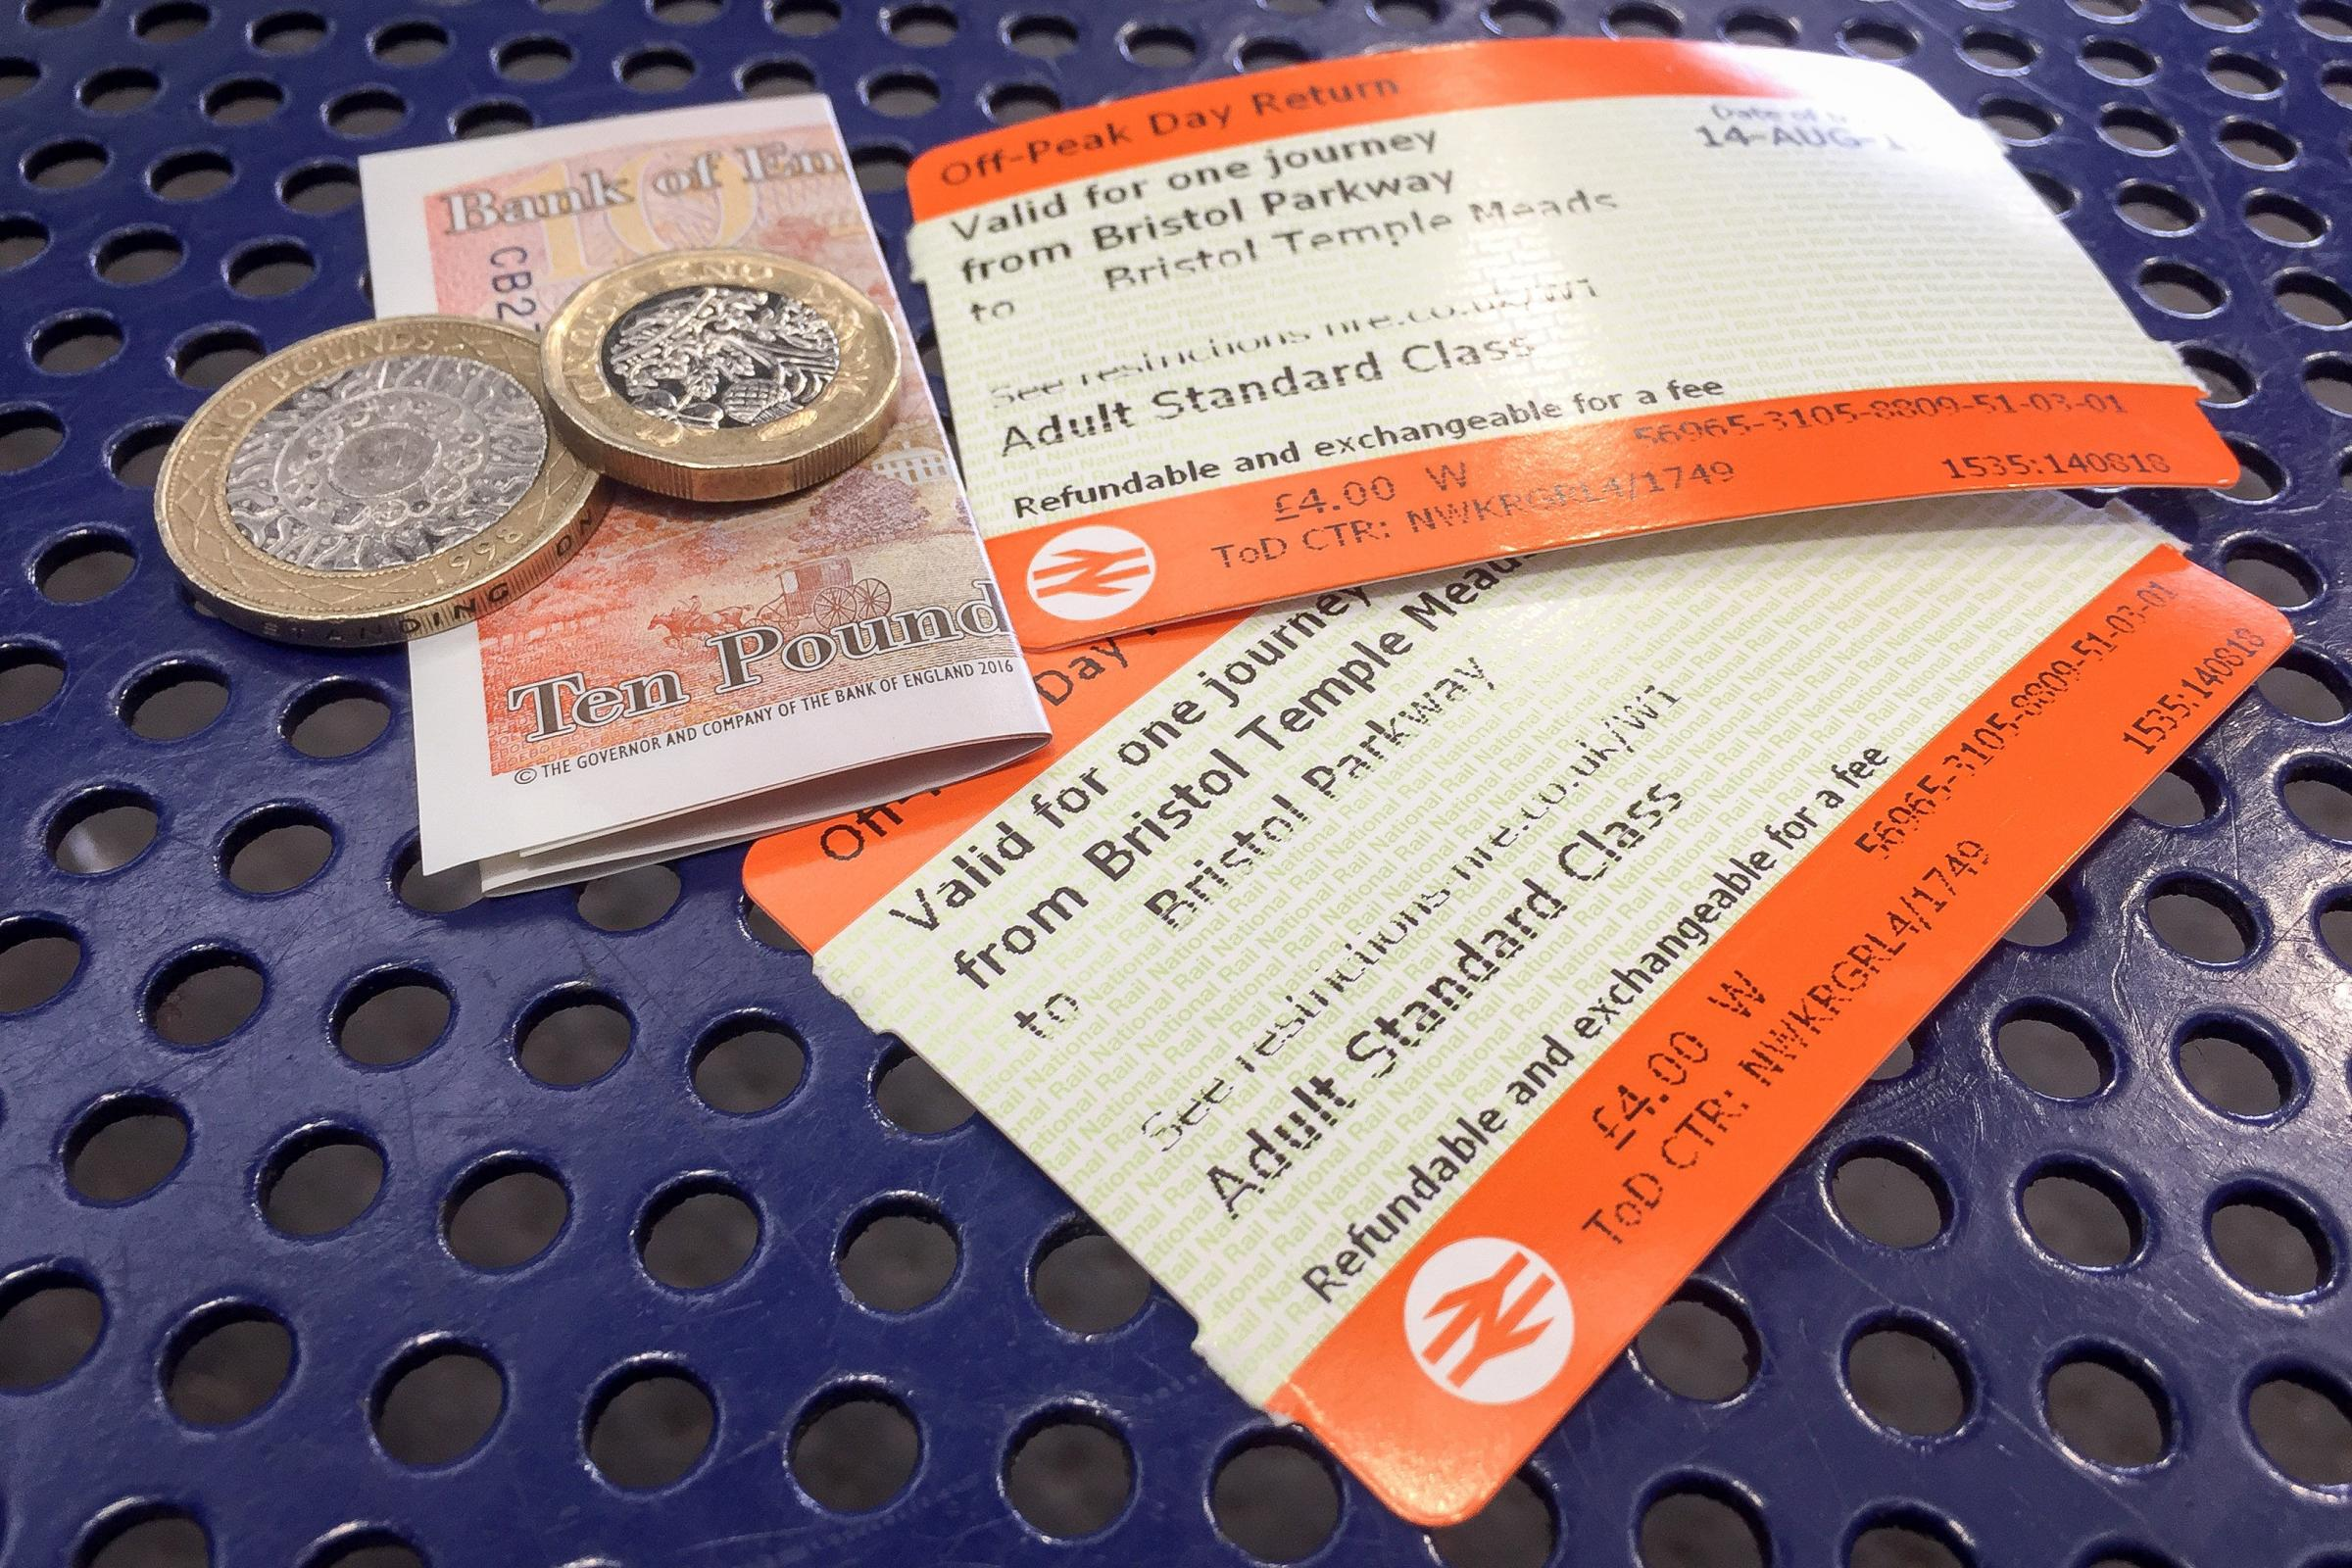 File photo dated 14/8/2018 of off-peak day return rail tickets and money. Britain's rail fares will increase by an average of 3.1% on January 2, industry body the Rail Delivery Group said. PRESS ASSOCIATION Photo. Issue date: Friday November 30, 201